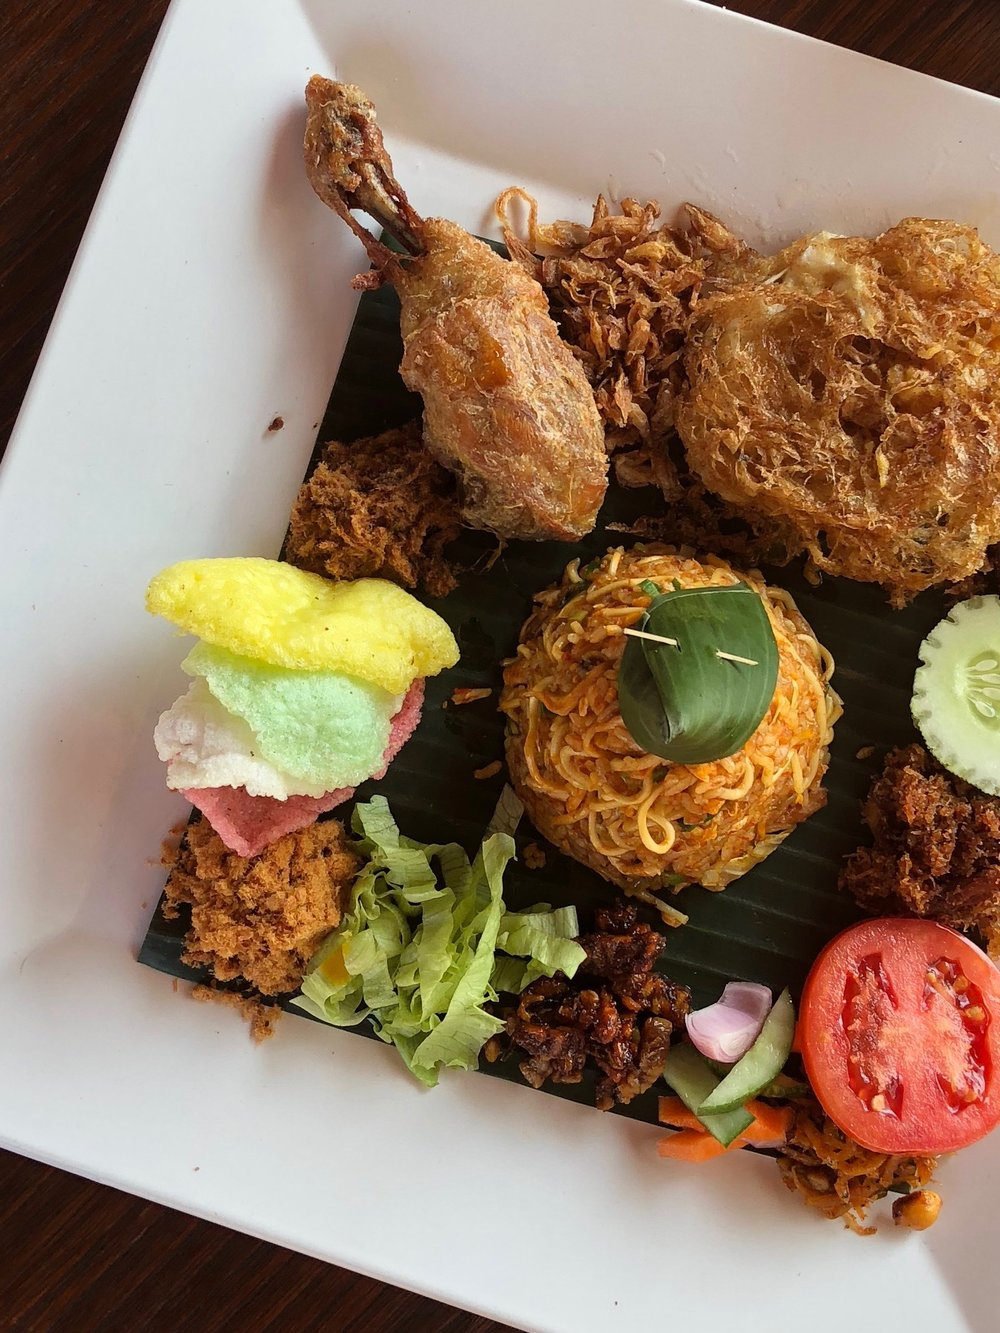 Nasi goreng magelangan combines rice and noodles